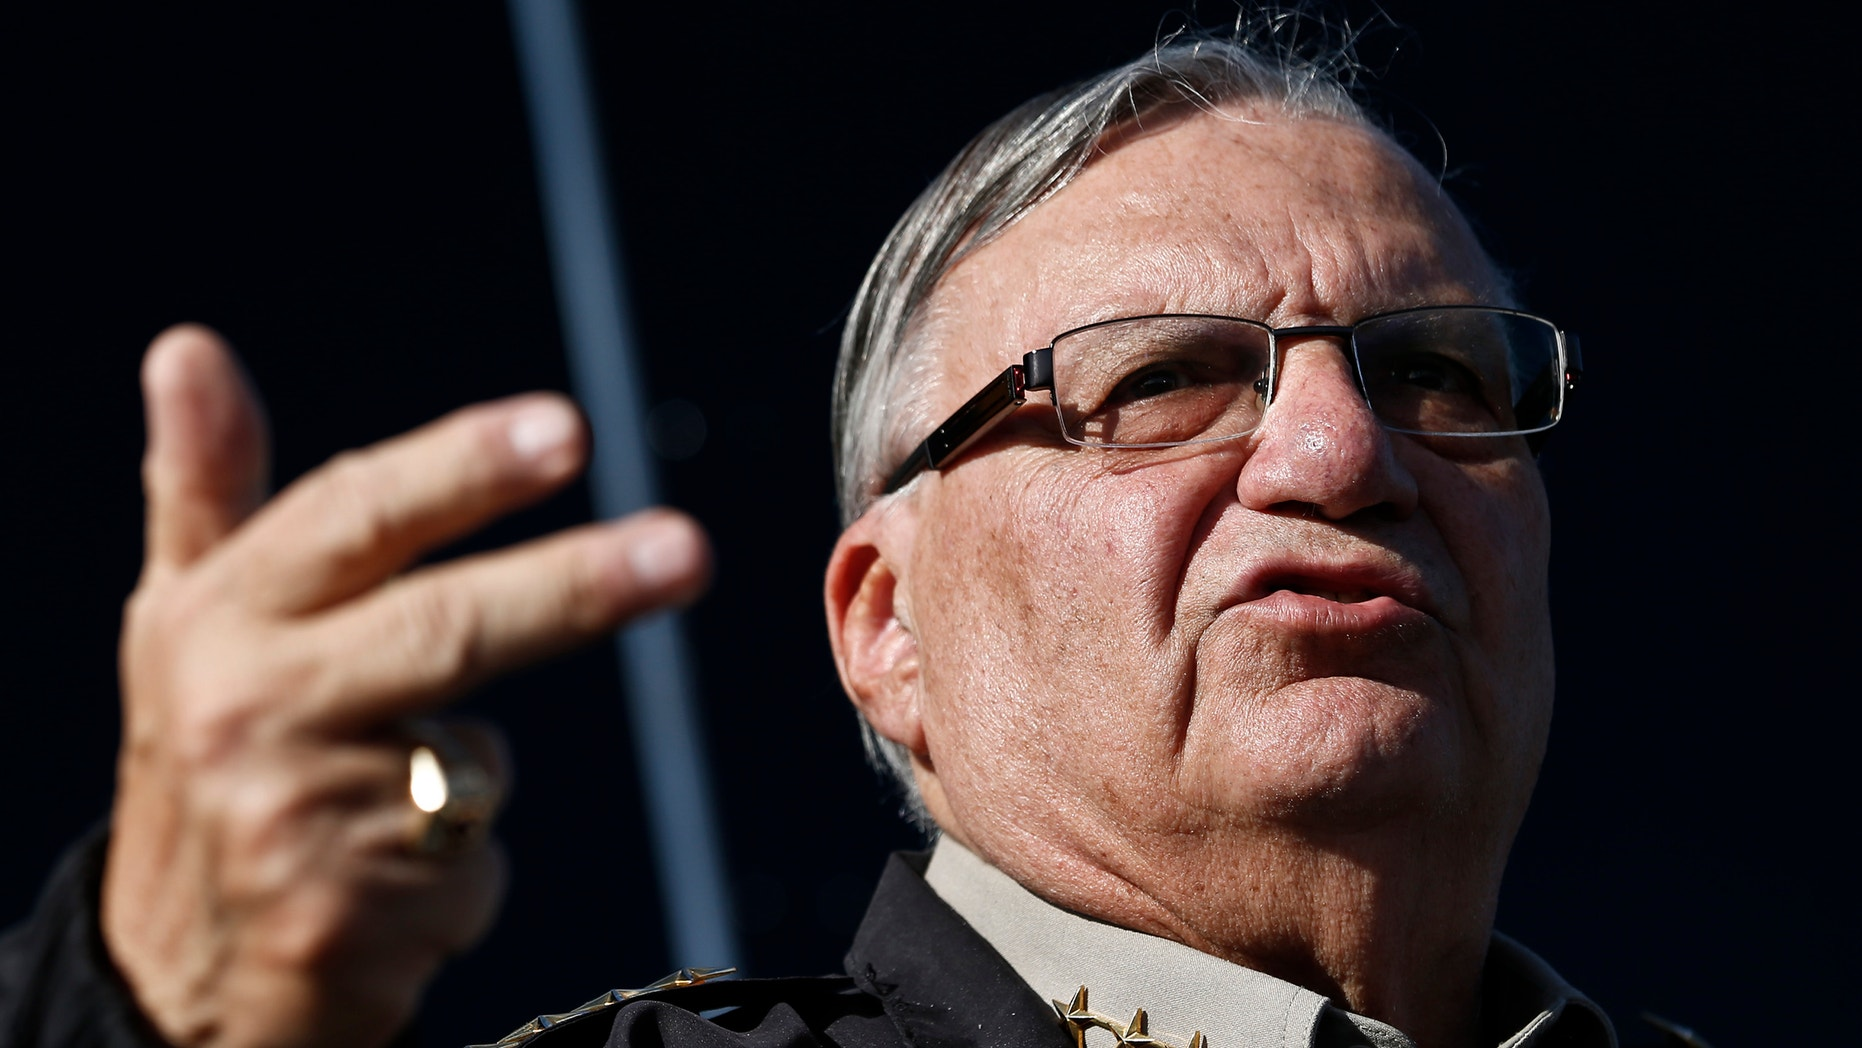 FILE - In this Jan. 9, 2013 file photo, Maricopa County Sheriff Joe Arpaio speaks with the media in Phoenix. Arpaio begins a four-day hearing Tuesday, April 21,  that could bring him fines, damage his credibility and make him politically vulnerable for his acknowledged violations of a judge's orders in a racial profiling case. (AP Photo/Ross D. Franklin,File)